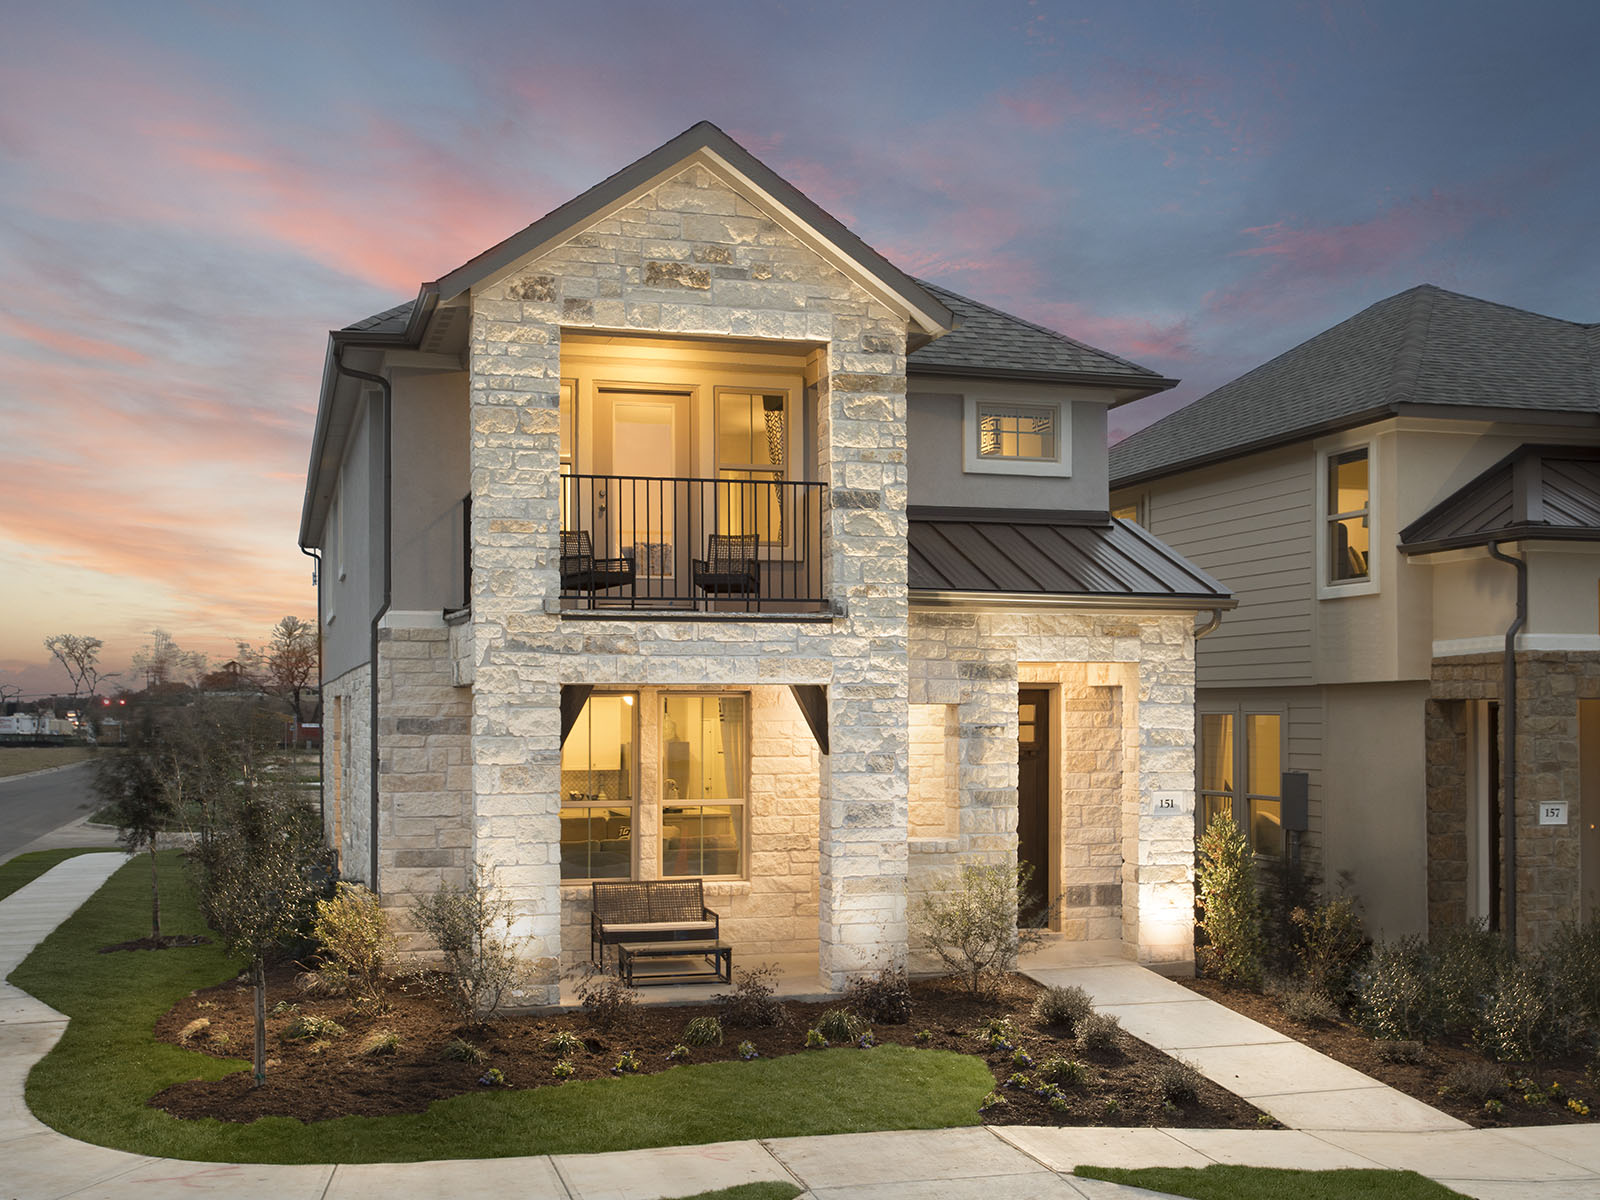 Big Sky Ranch by Meritage Homes Dripping Springs (855)588-6374